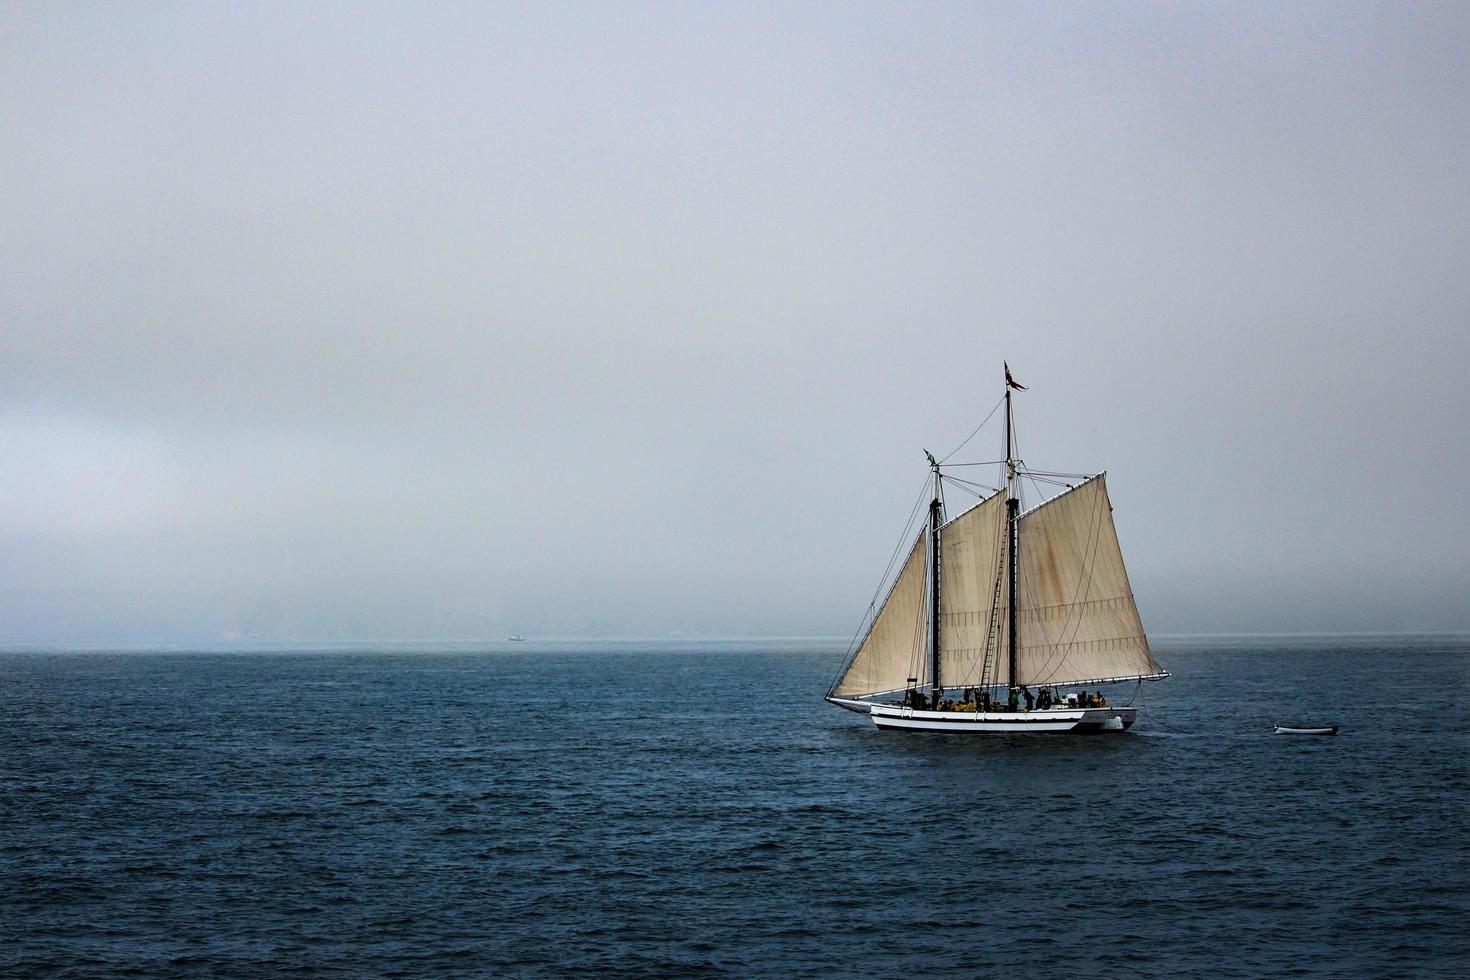 San Francisco, California, 2020 - Sailboat on the sea photo